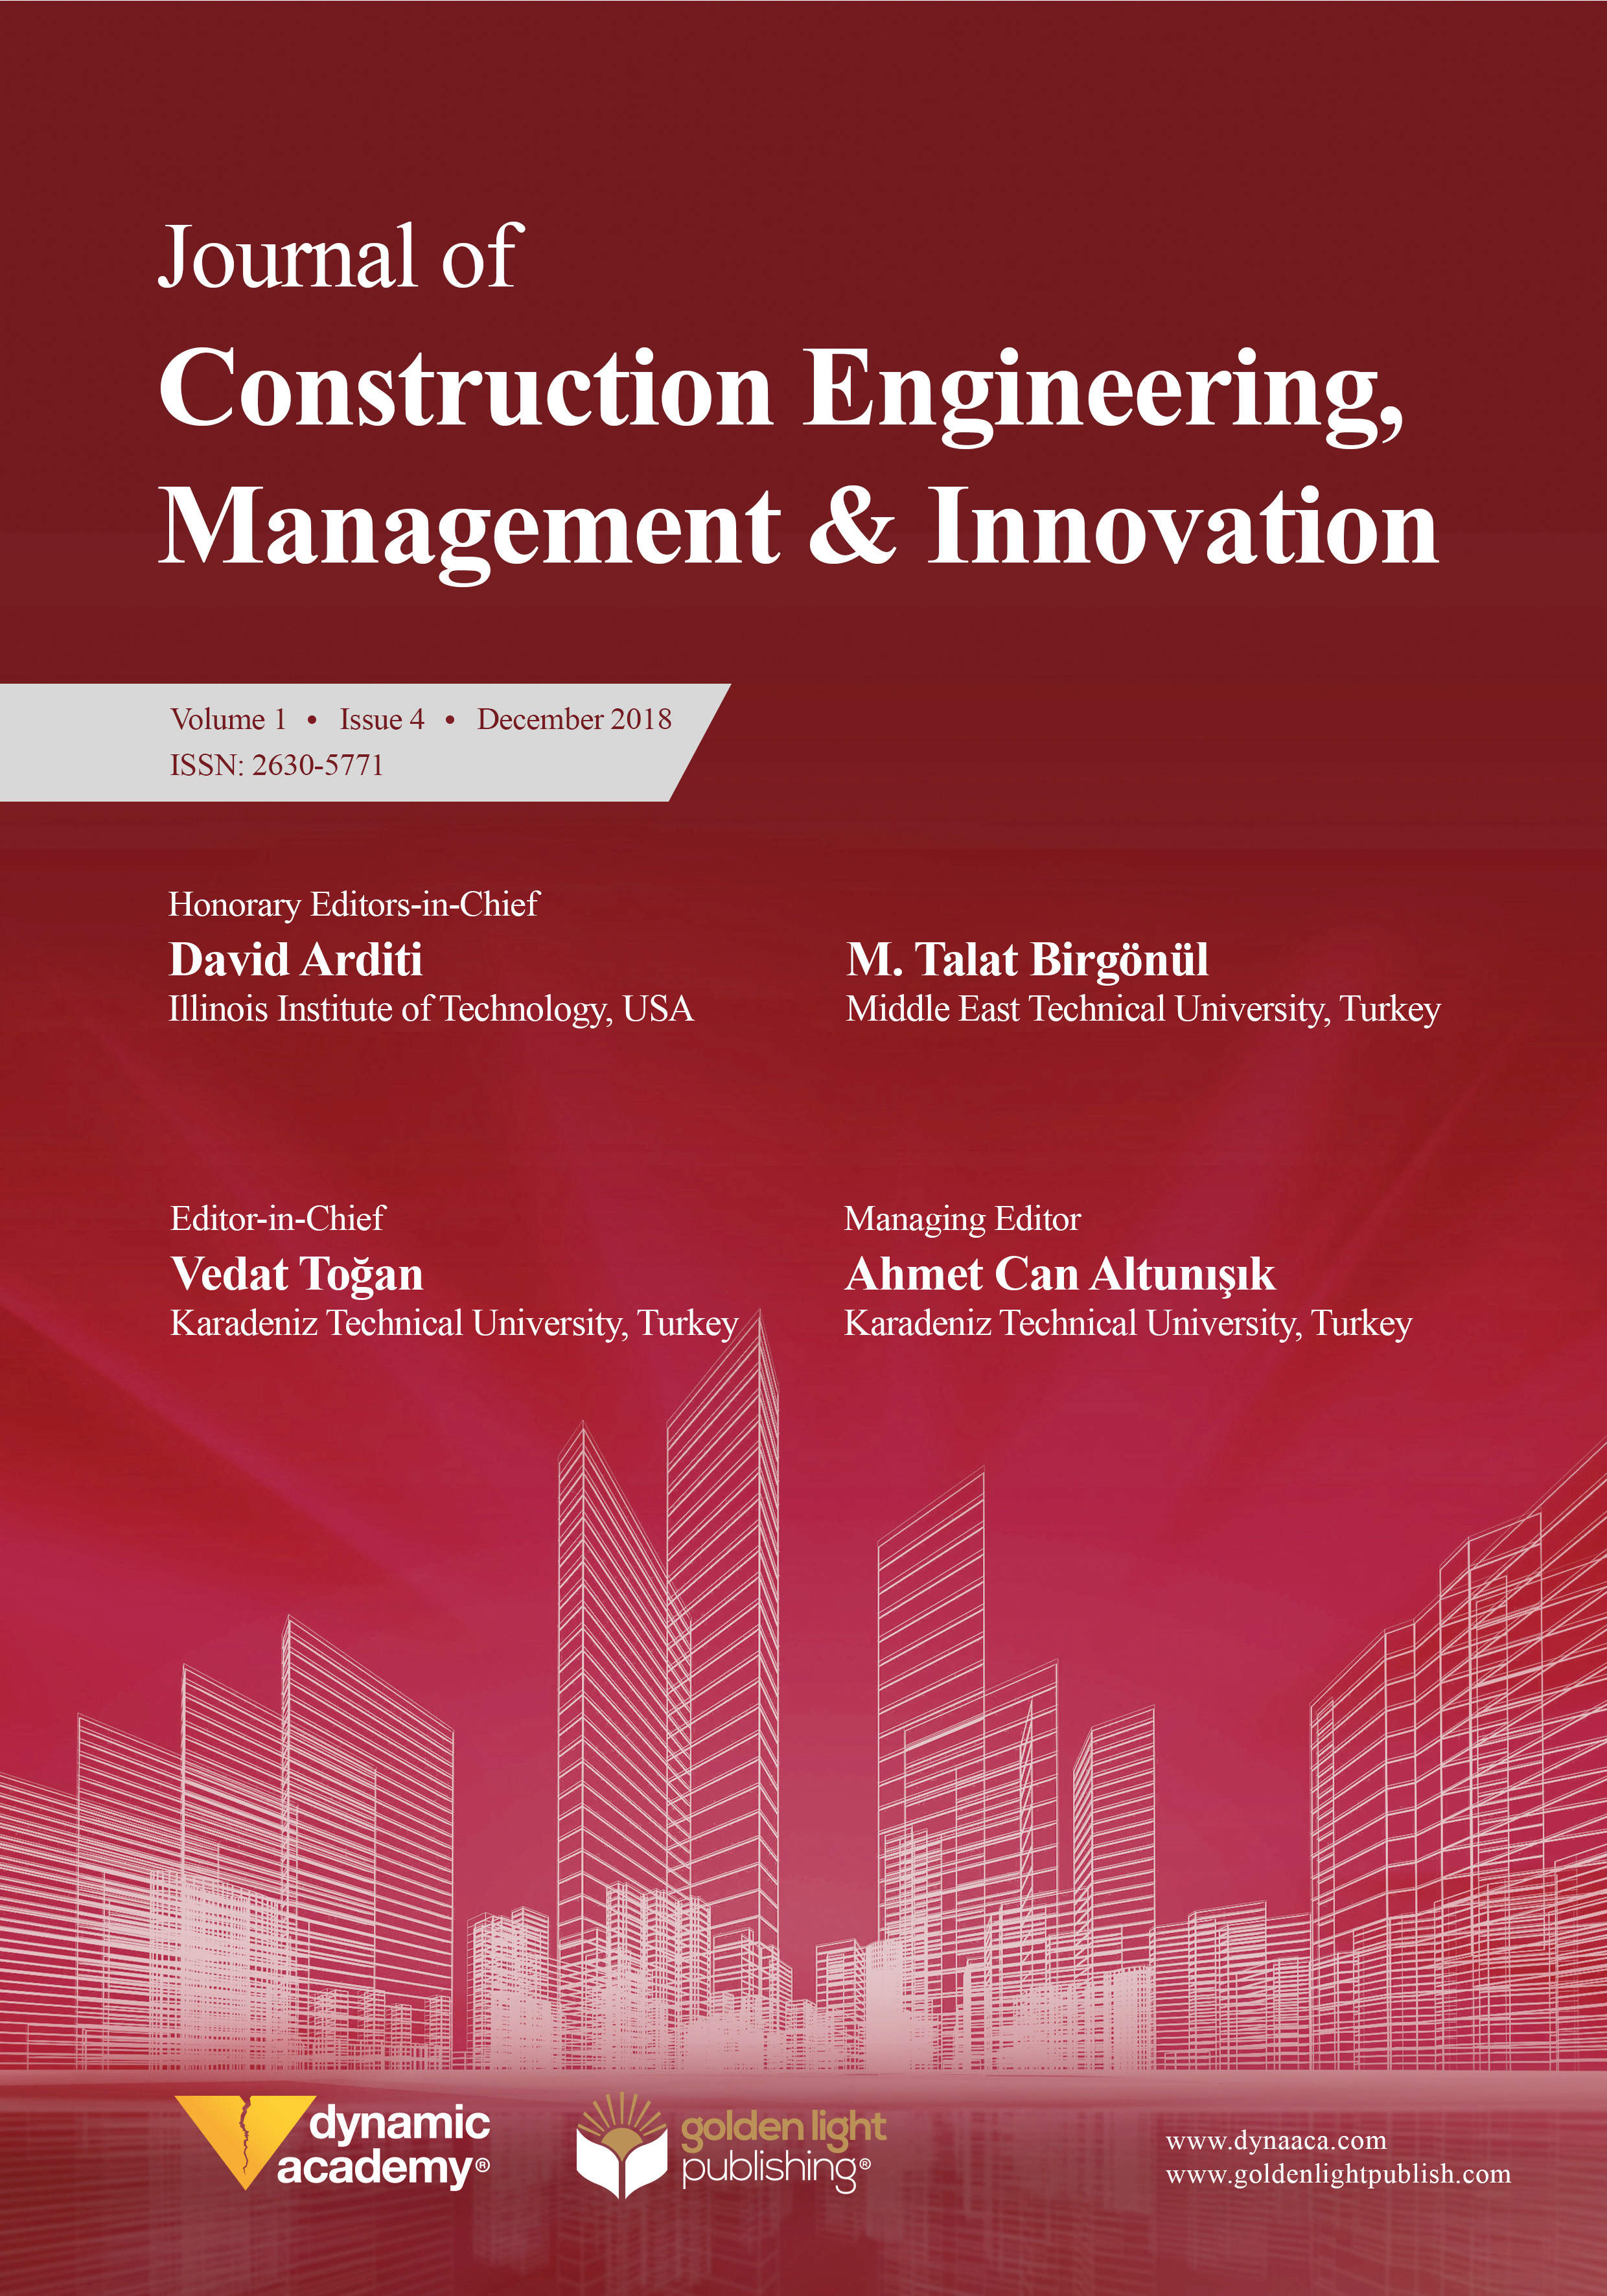 Journal of Construction Engineering, Management & Innovation